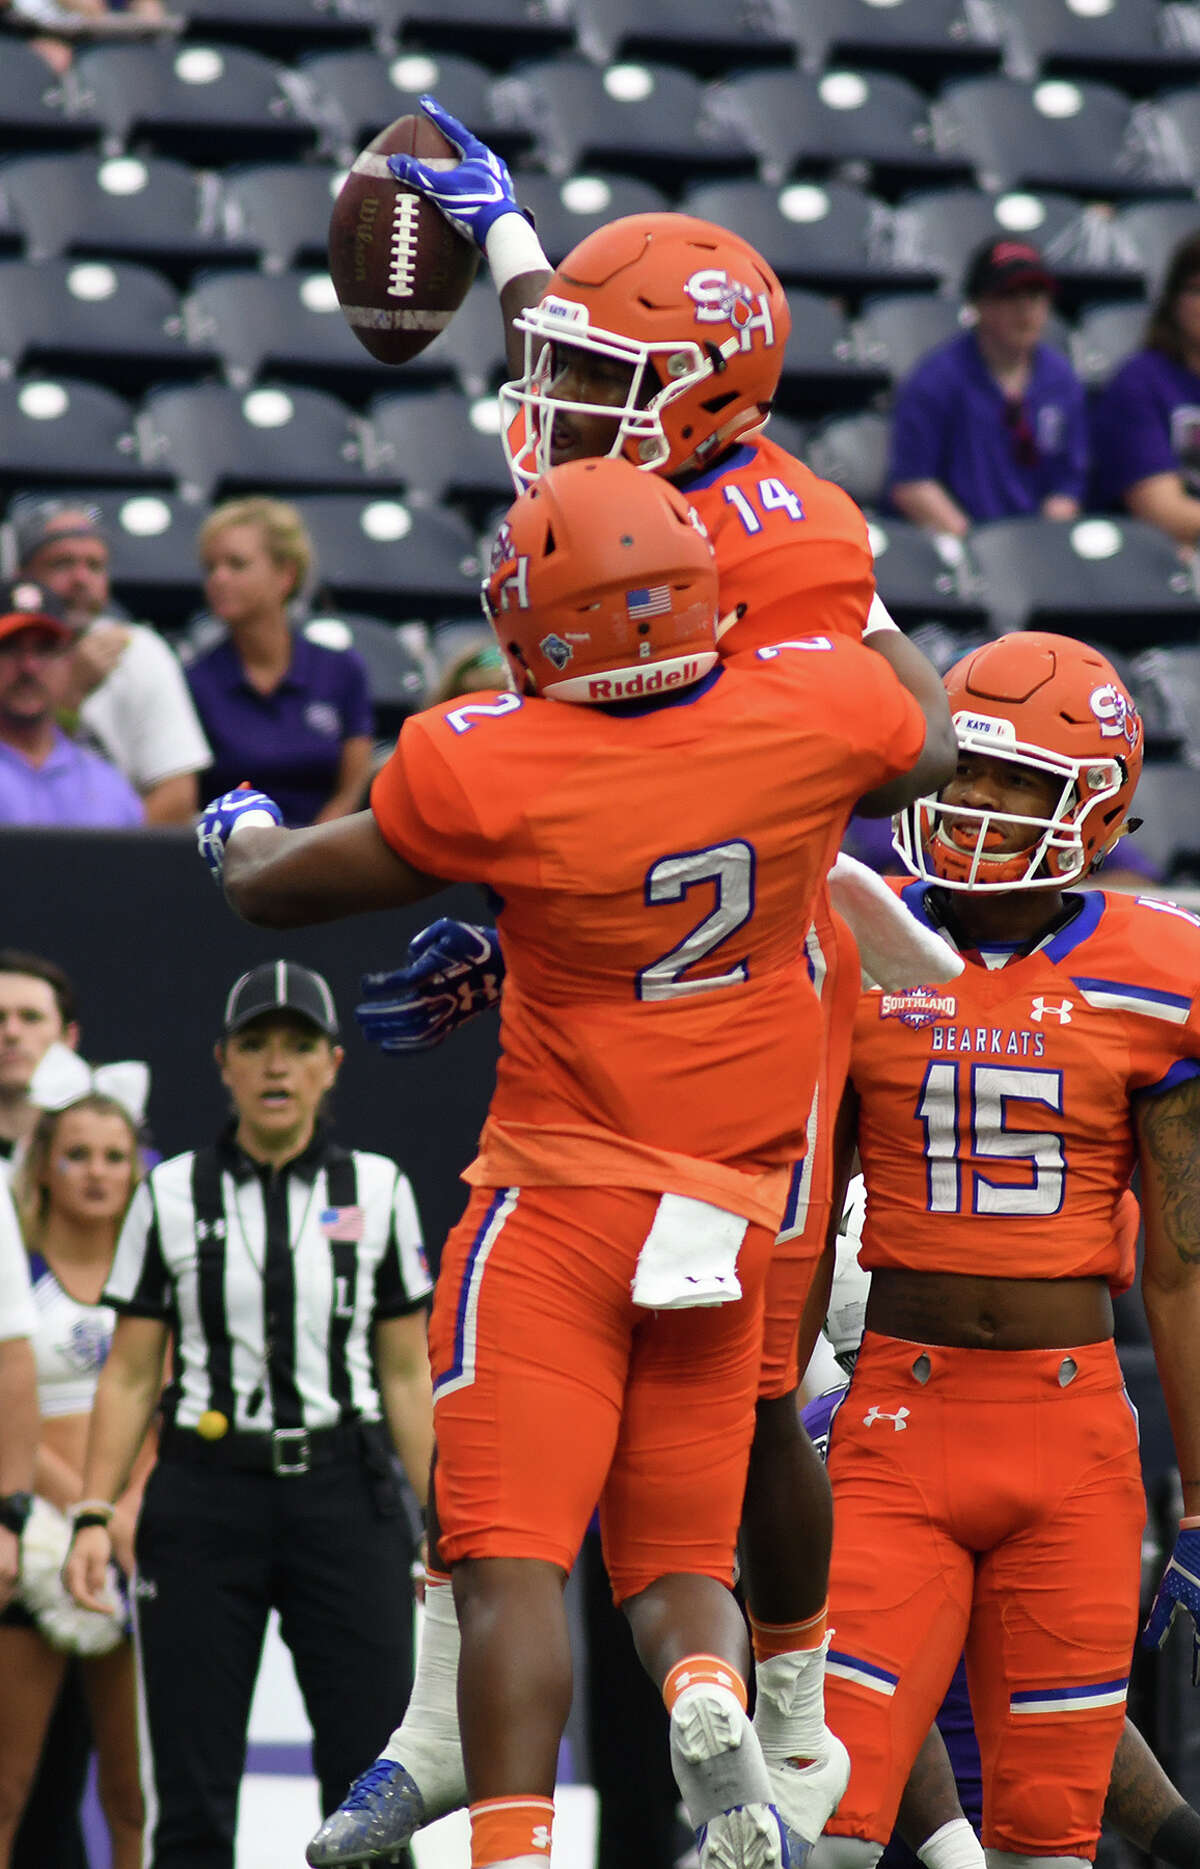 Sam Houston State junior wide receiver Davion Davis (14) celebrates his first quarter touchdown against Stephen F. Austin with teammates Tyler Scott (2) and Coree Compton (15) during their Battle of the Piney Woods clash at NRG Stadium in Houston on Saturday, Oct. 7, 2017. (Photo by Jerry Baker/Freelance)